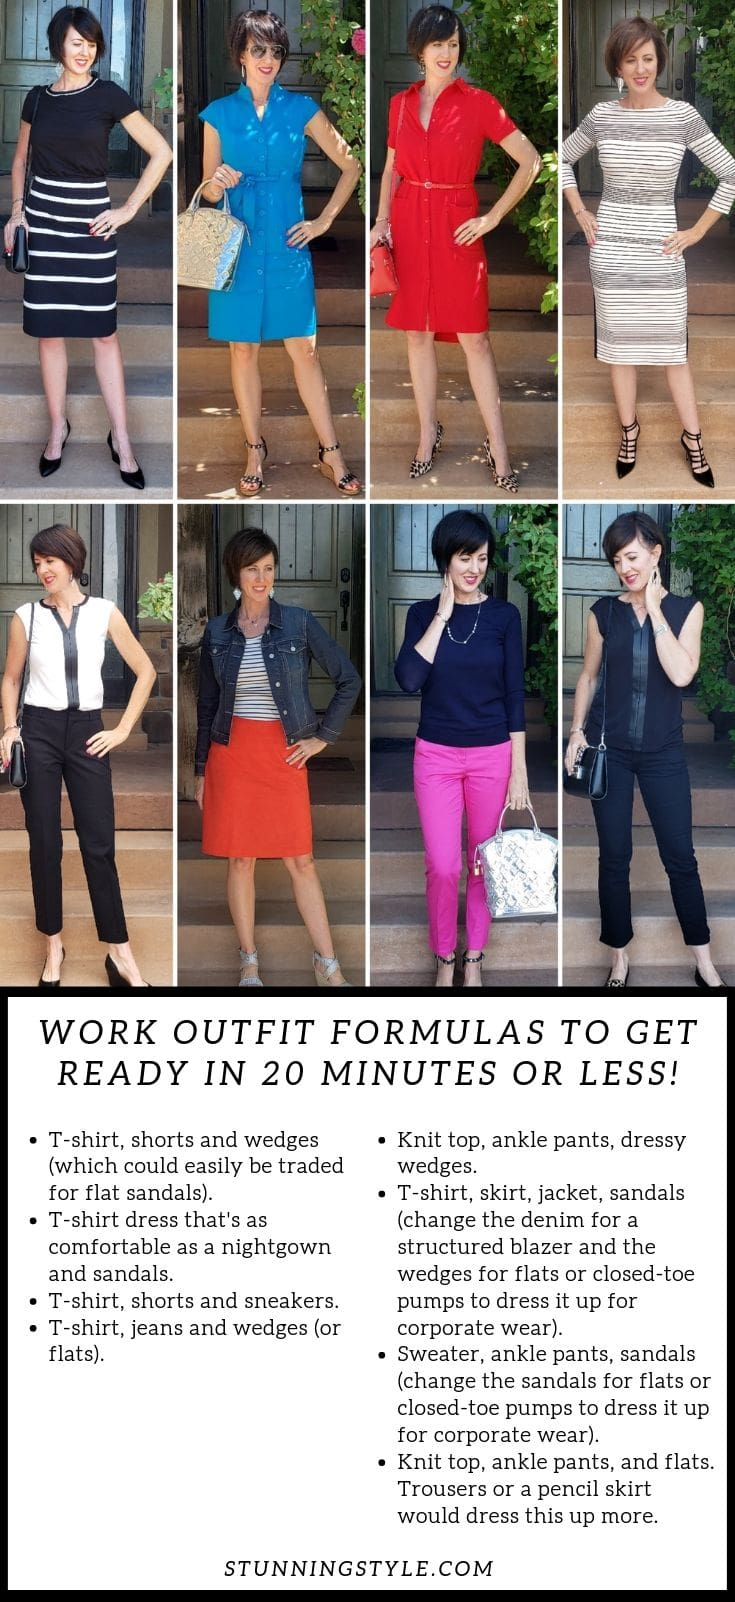 Work outfit formulas to get ready in 20 minutes or less